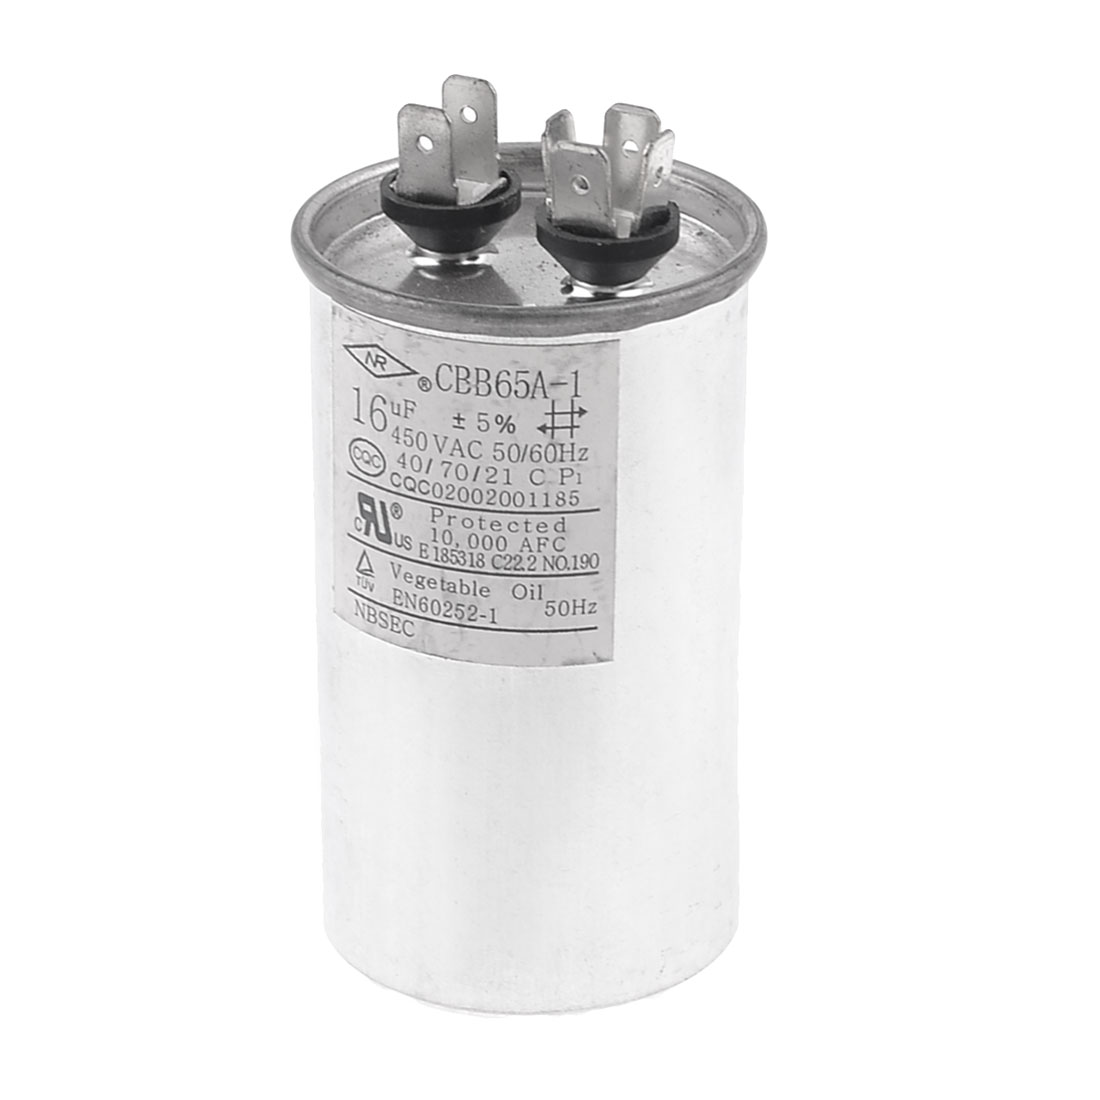 CBB65A-1 16uF AC 450V Motor Capacitor for Air Conditioner Engine